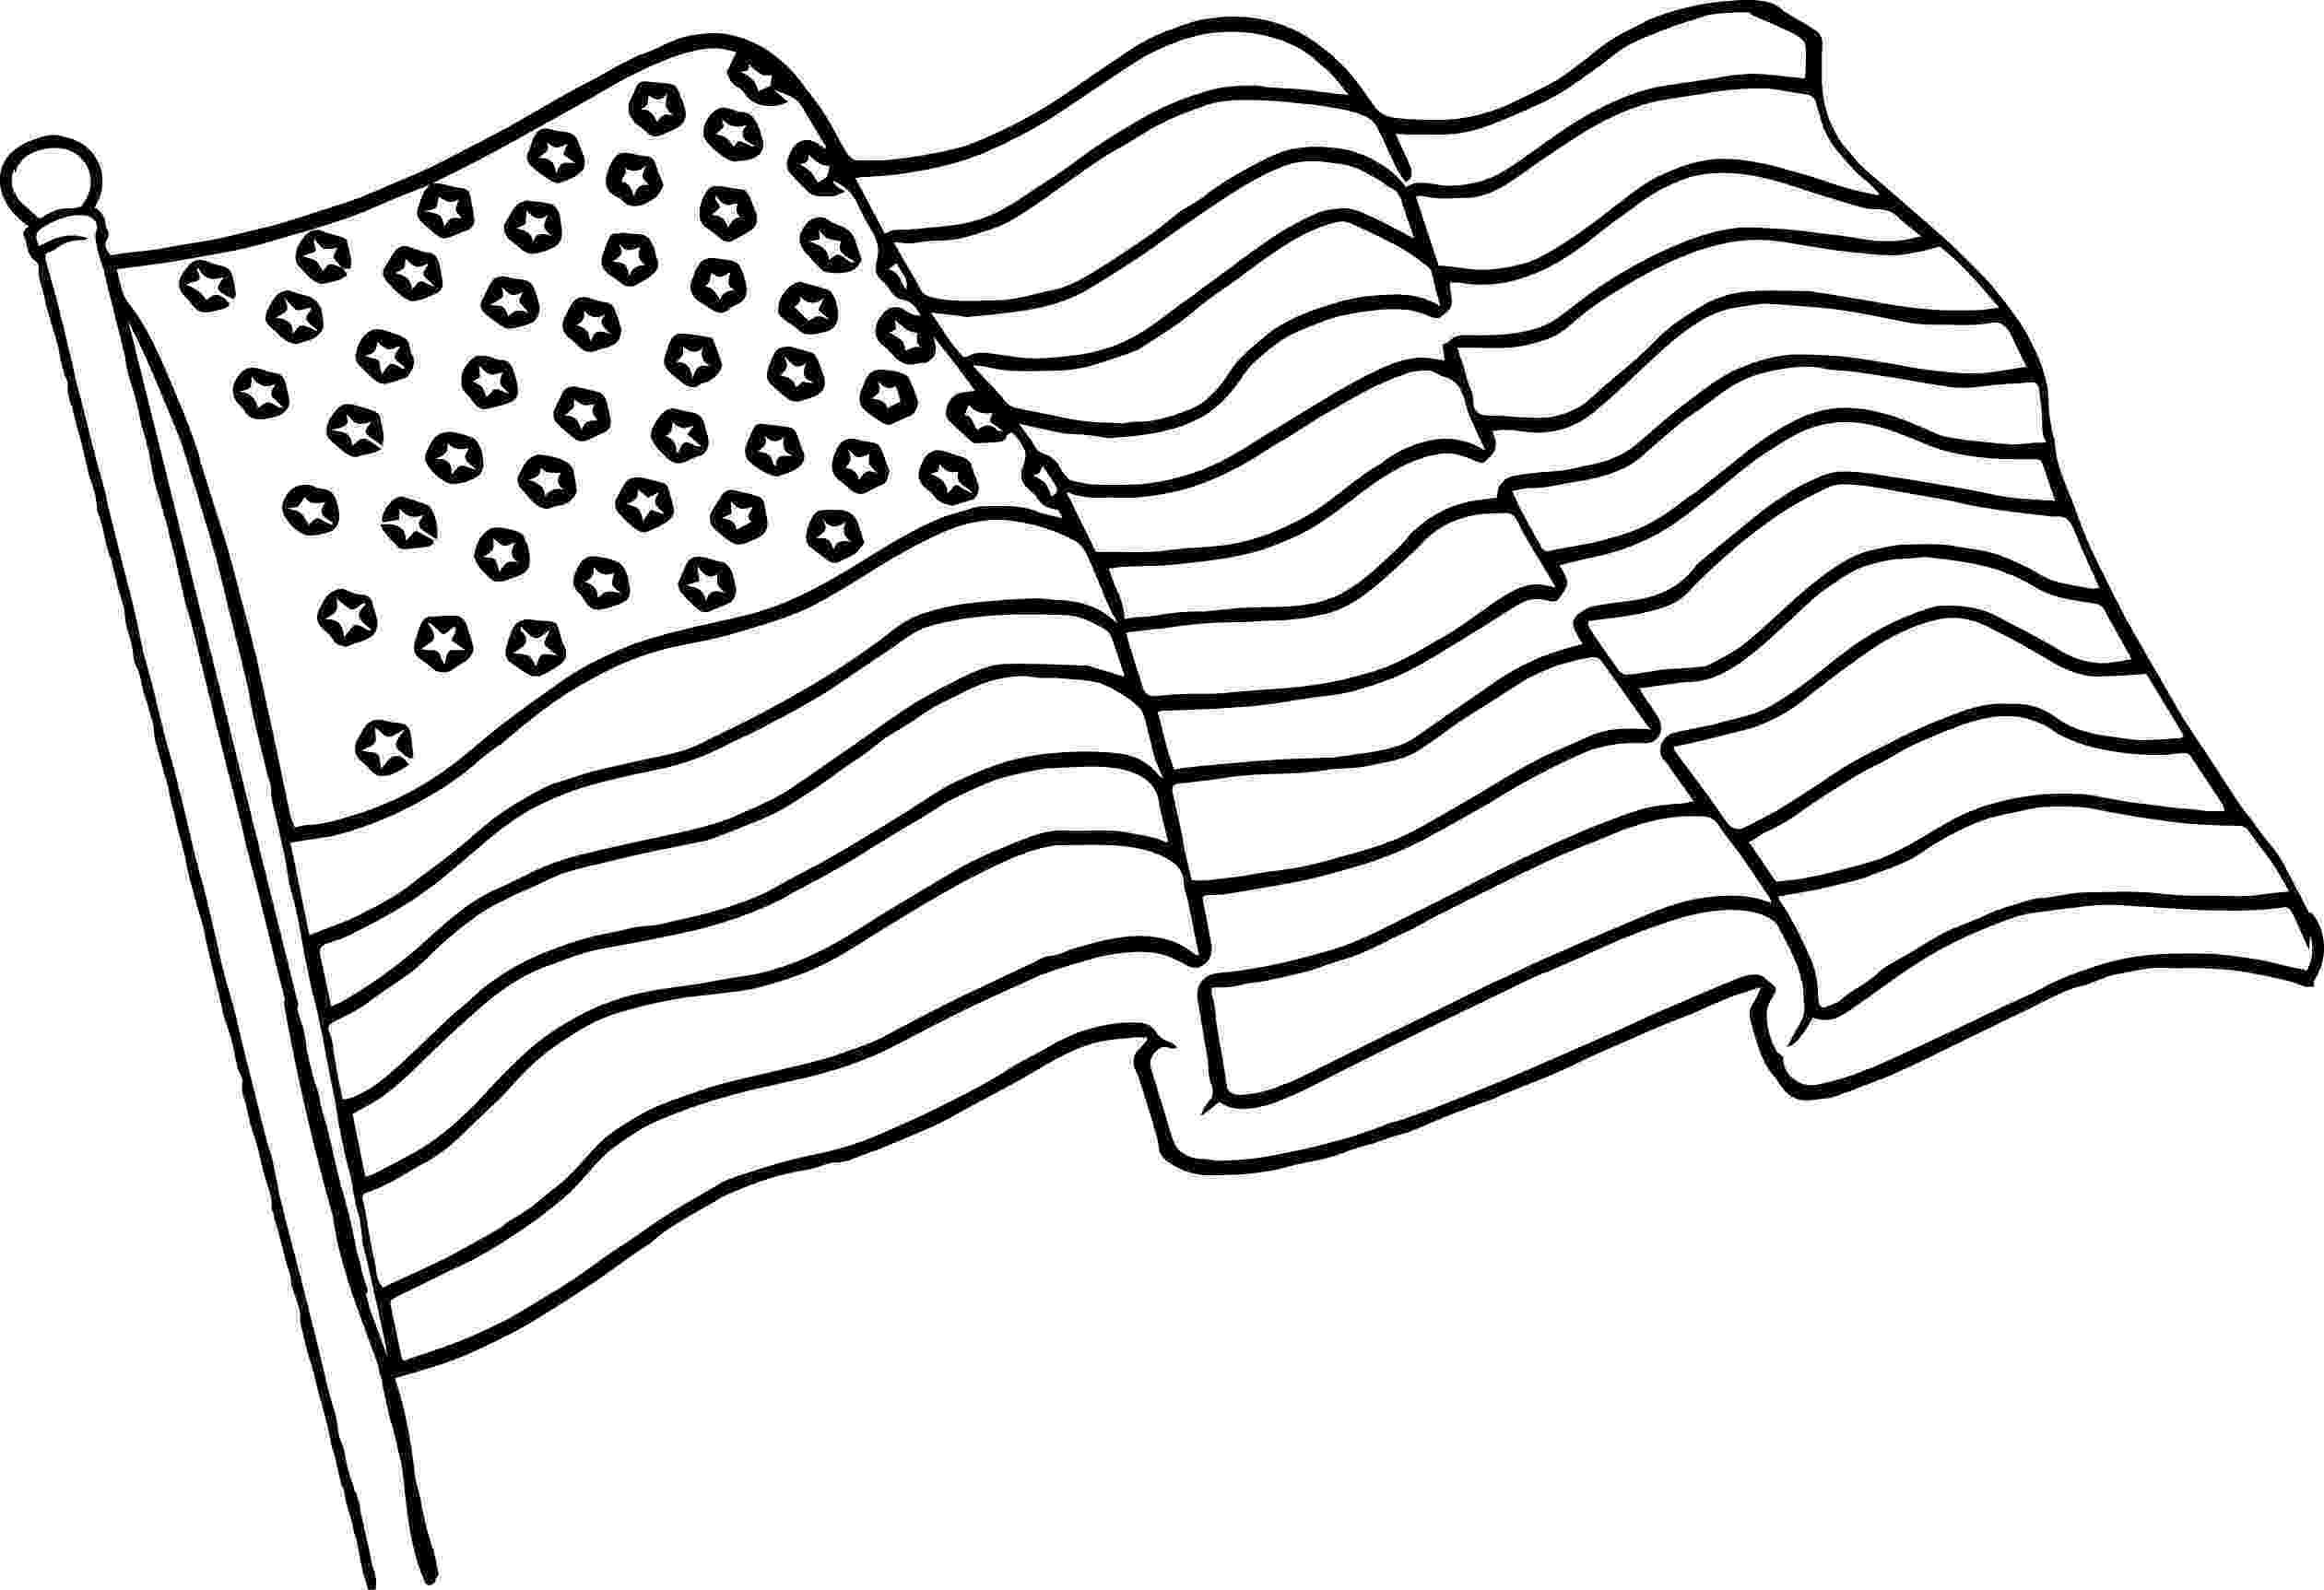 american flag to color american flag coloring page for the love of the country american flag color to